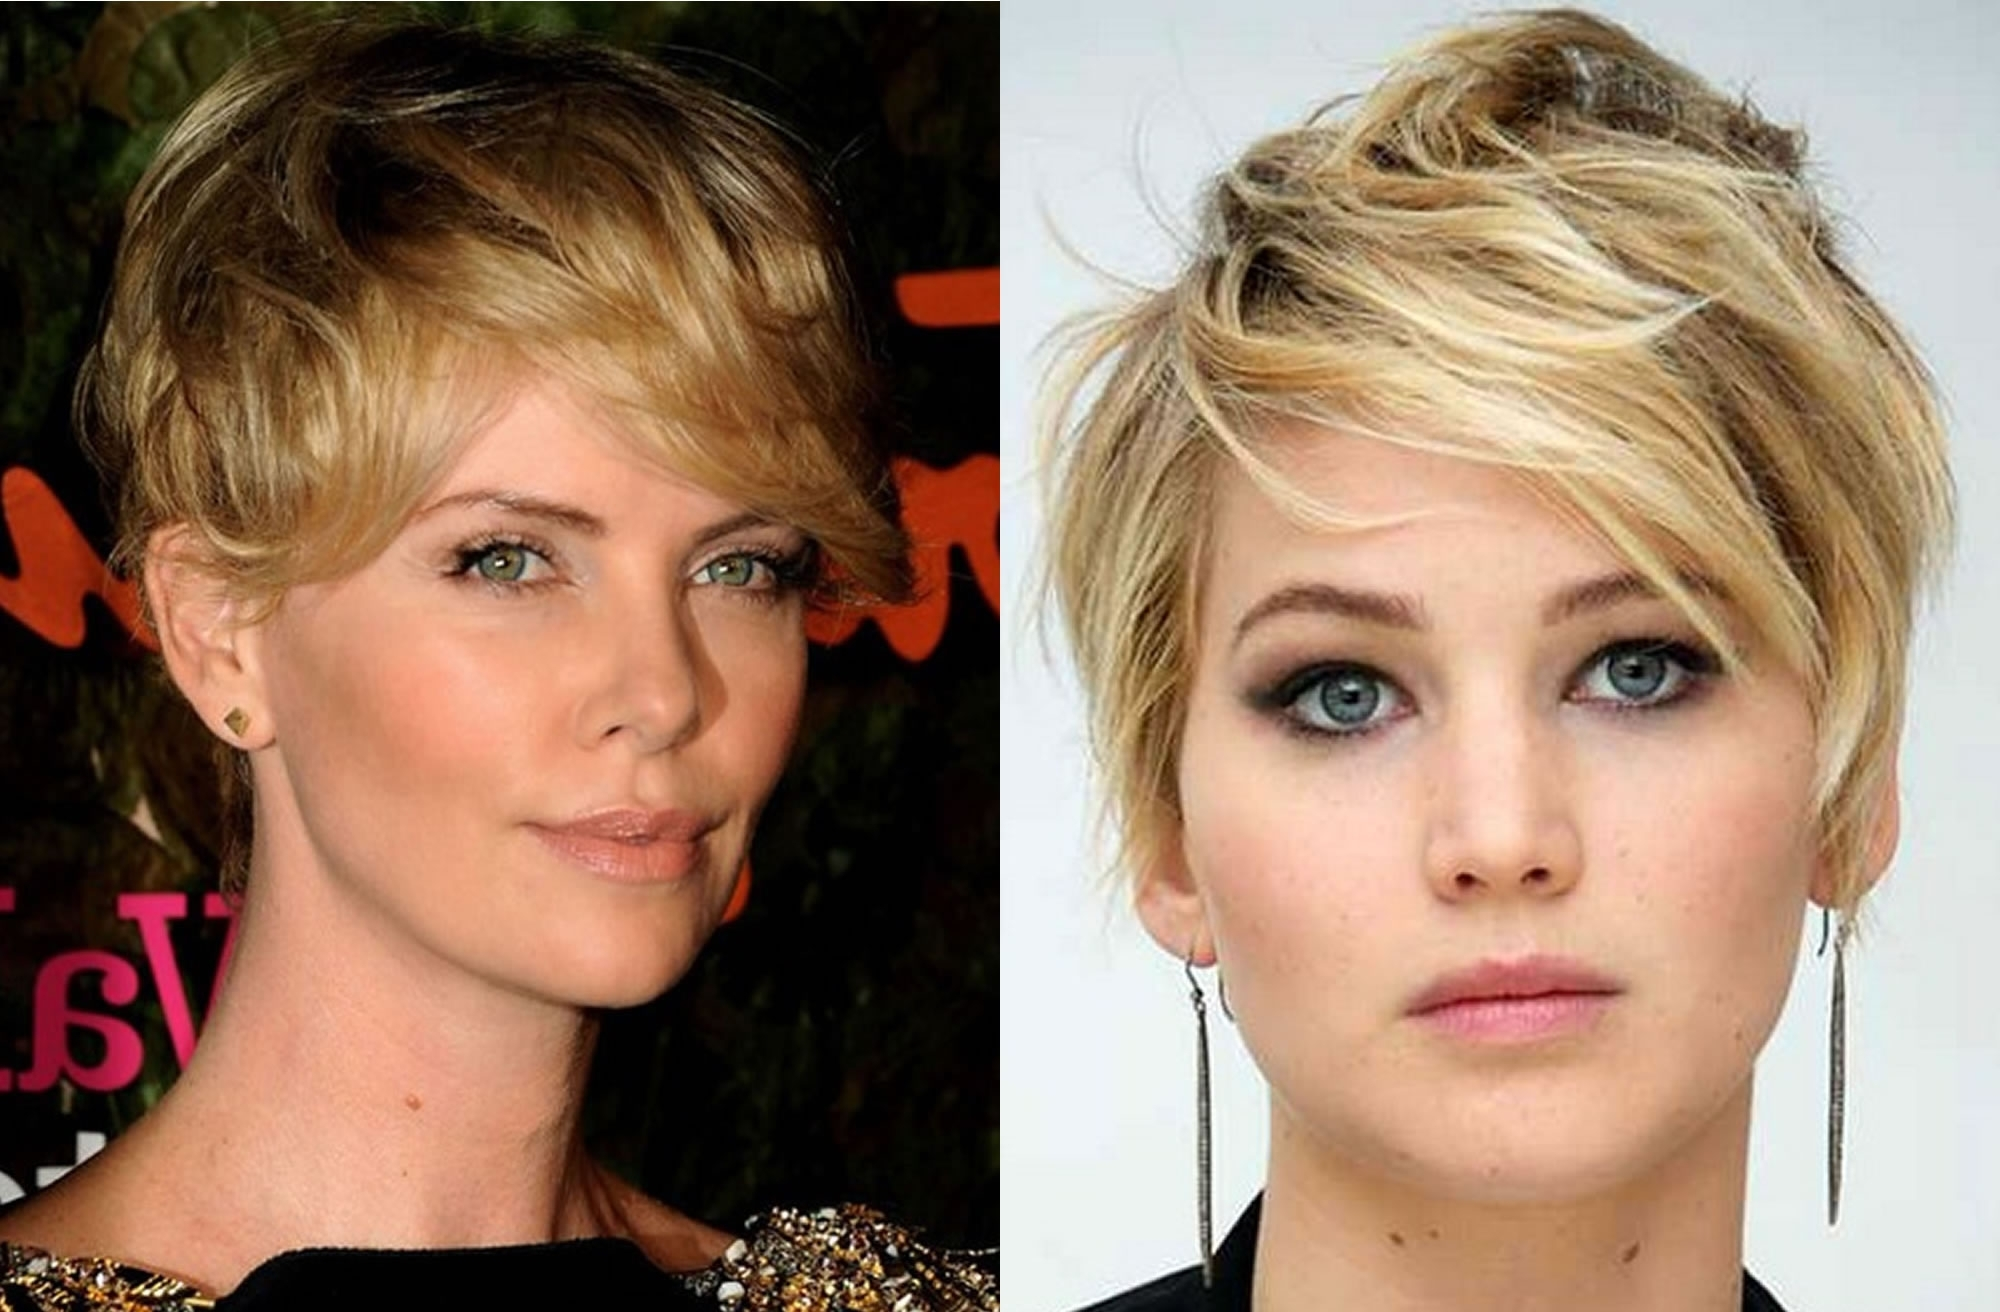 25 Unique Pixie Haircuts For Girls 2018 2019 – Latest Pixie Cut Ideas In Most Current Girls Pixie Hairstyles (View 4 of 15)